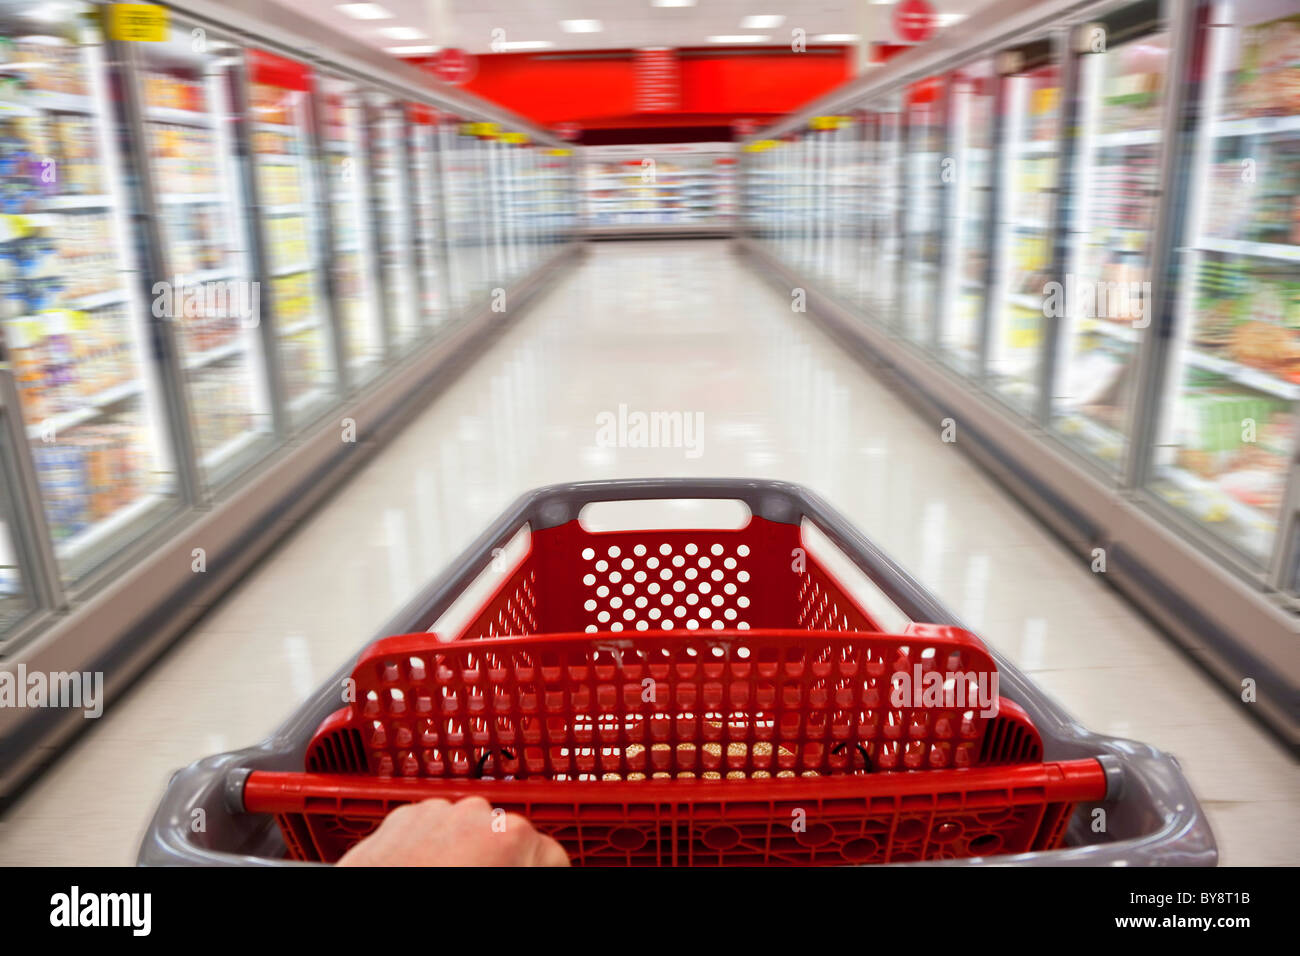 A fast food concept motion blur shot of a shopping trolley being pushed down the aisle of a supermarket - Stock Image